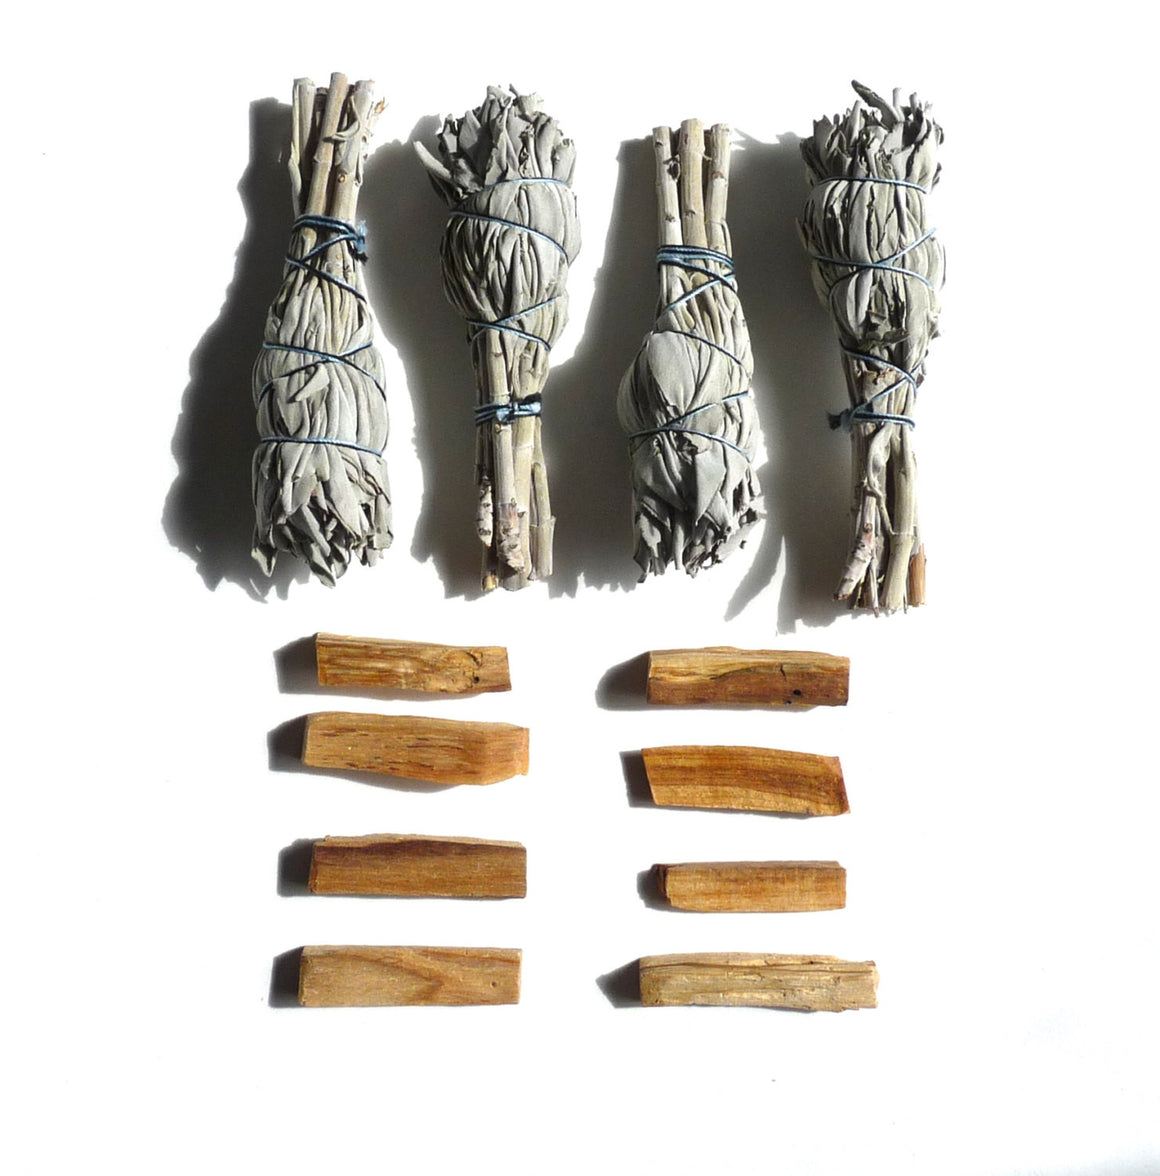 PALO SANTO & SAGE set - smudge stick, clearing tool